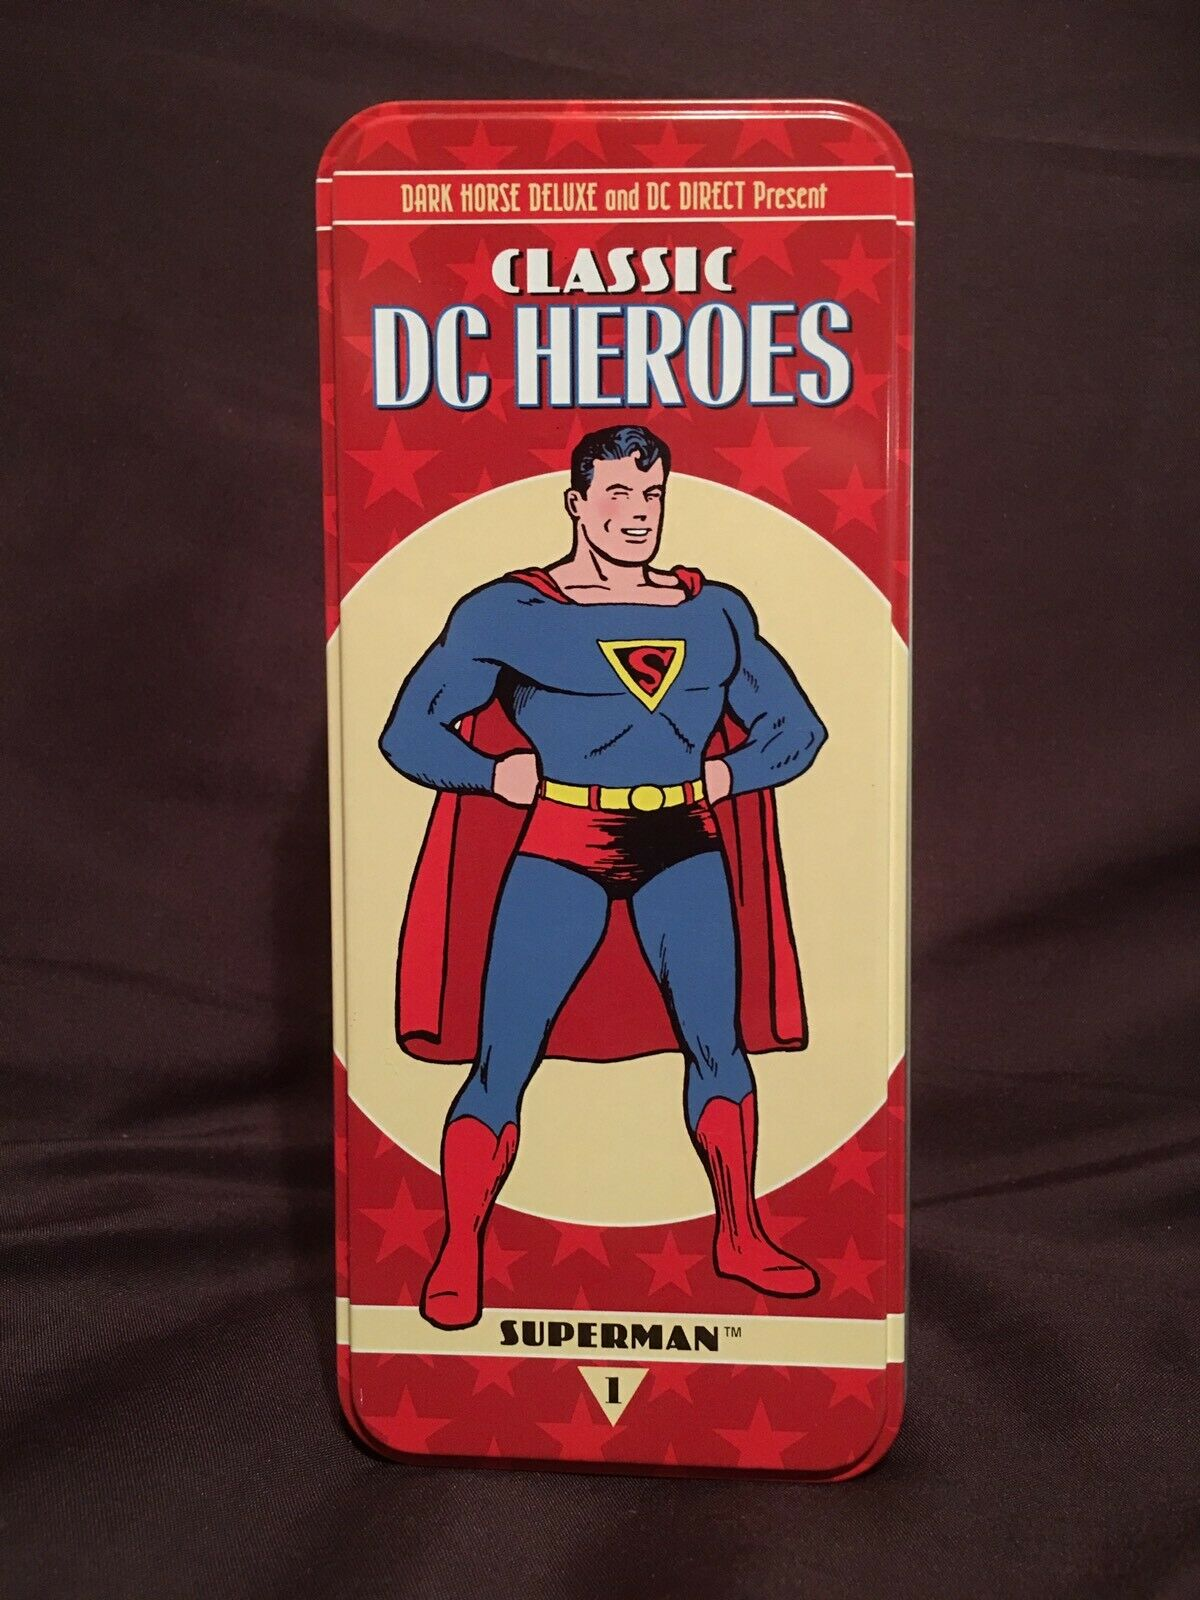 RARE Dark Horse Superman Classic DC Heroes Syroco Figure 2007 A P 1 OF 35